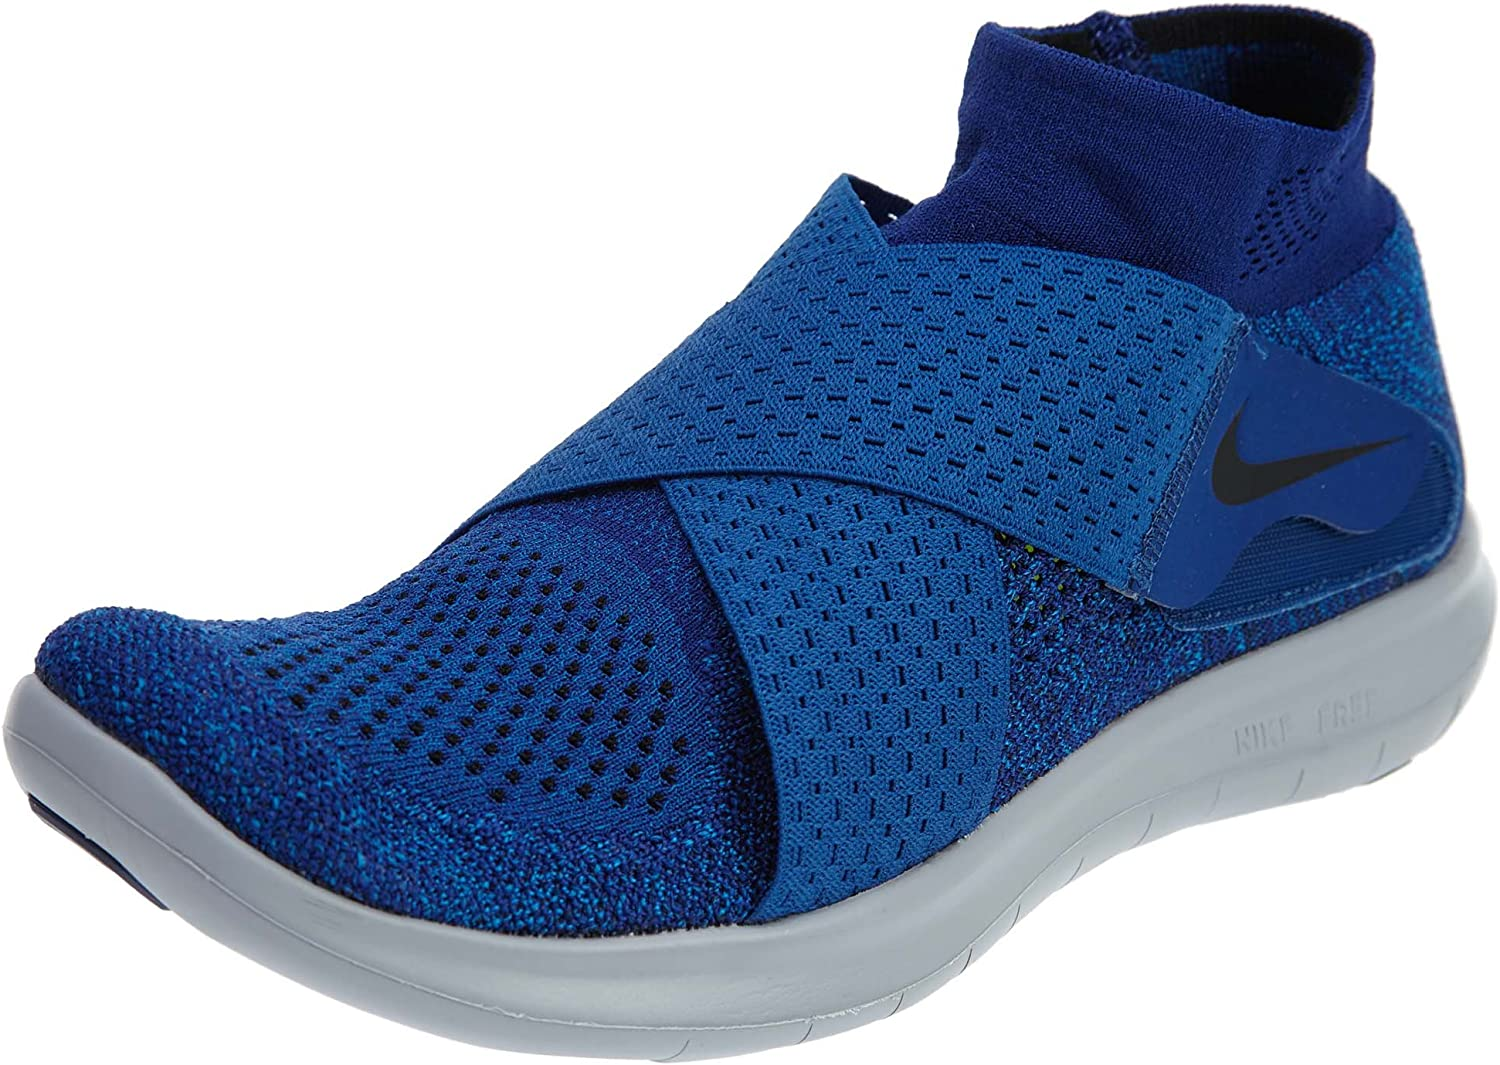 Nike Free RN Motion FK 2017, Zapatillas de Trail Running para Hombre, Azul (Binary Blue/Black/Obsidian/Gym Blue 401), 45.5 EU: Amazon.es: Zapatos y complementos